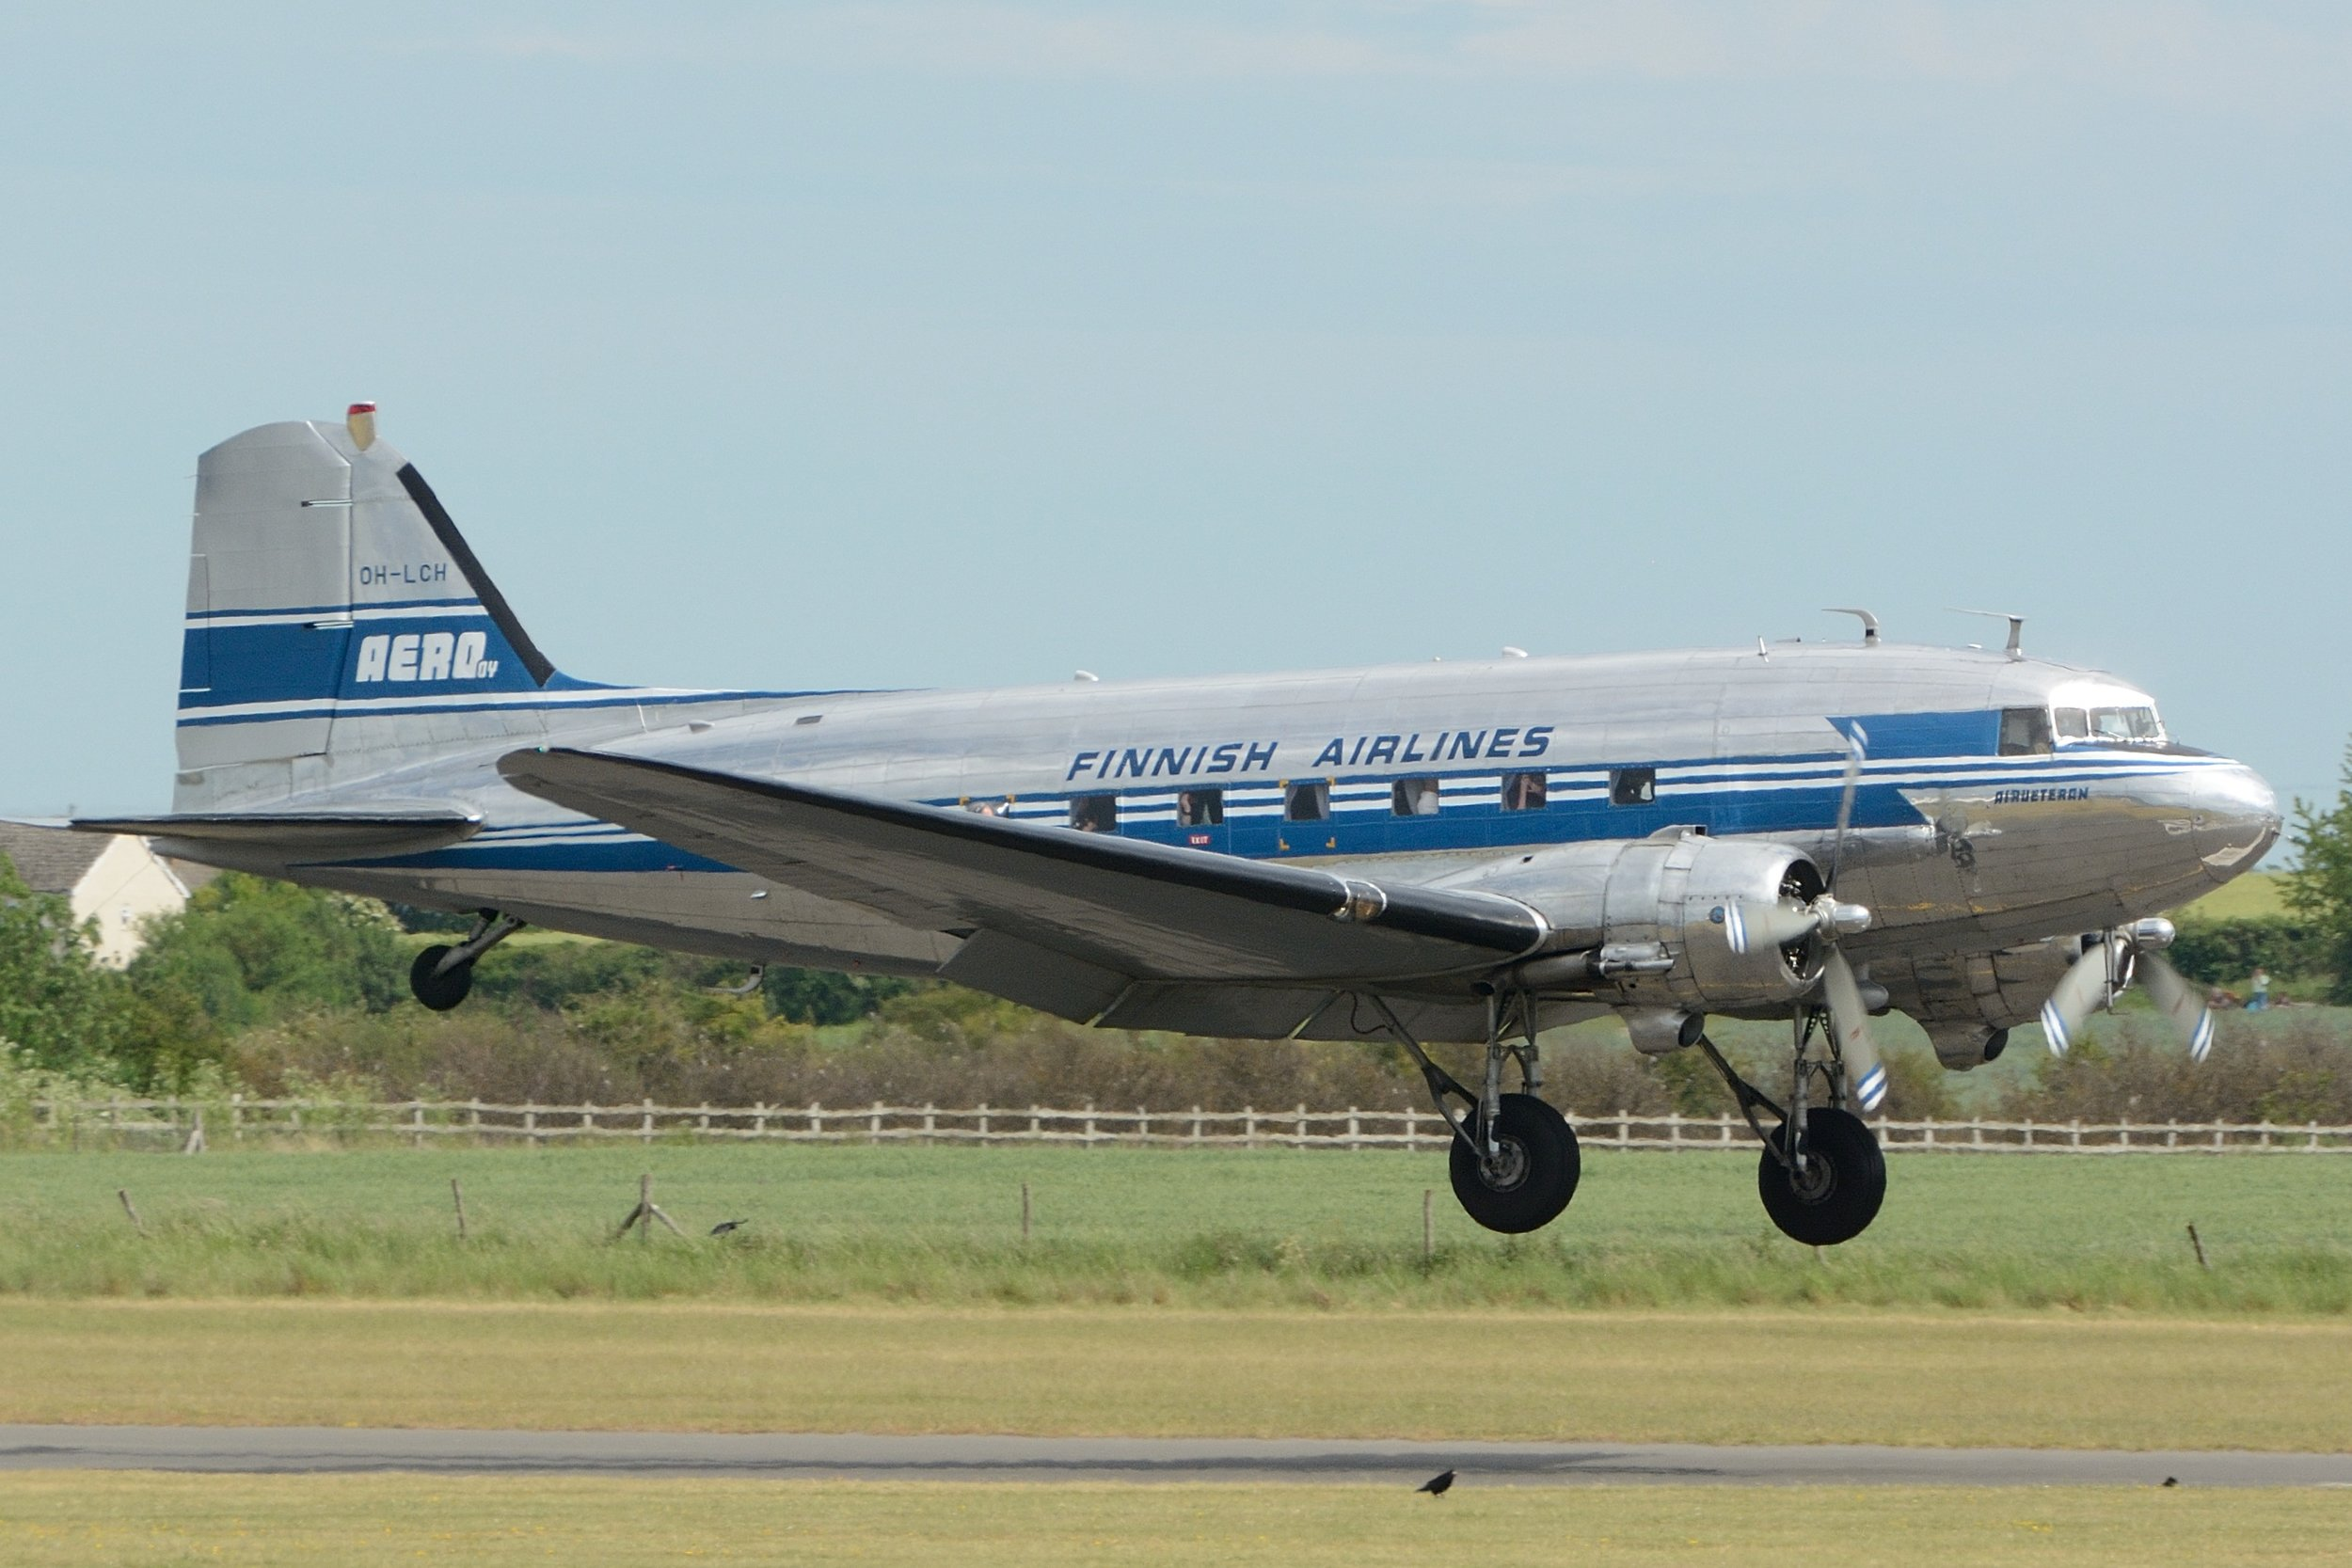 OH-LCH Finnish Airlines Dc3 on approach to Duxford 2nd June 2019. Photo: Paul Watson